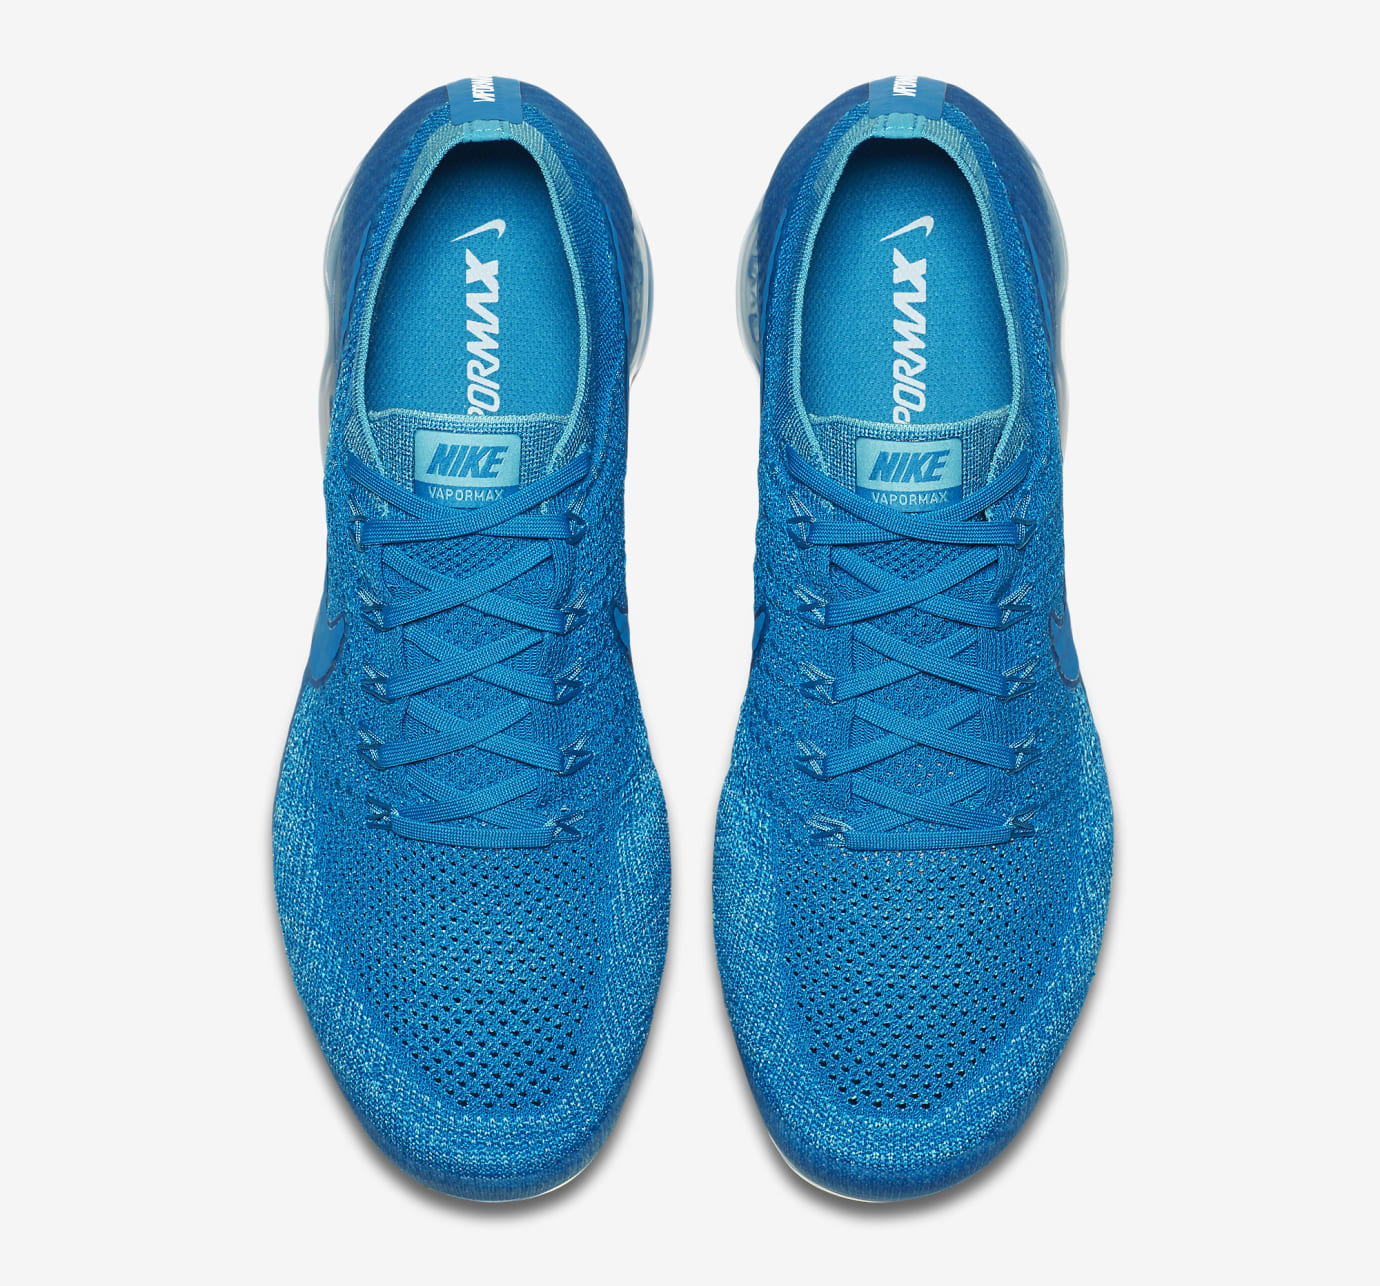 6355b4facc3df Image via Nike Blue Orbit Nike Vapormax 849558-402 Top